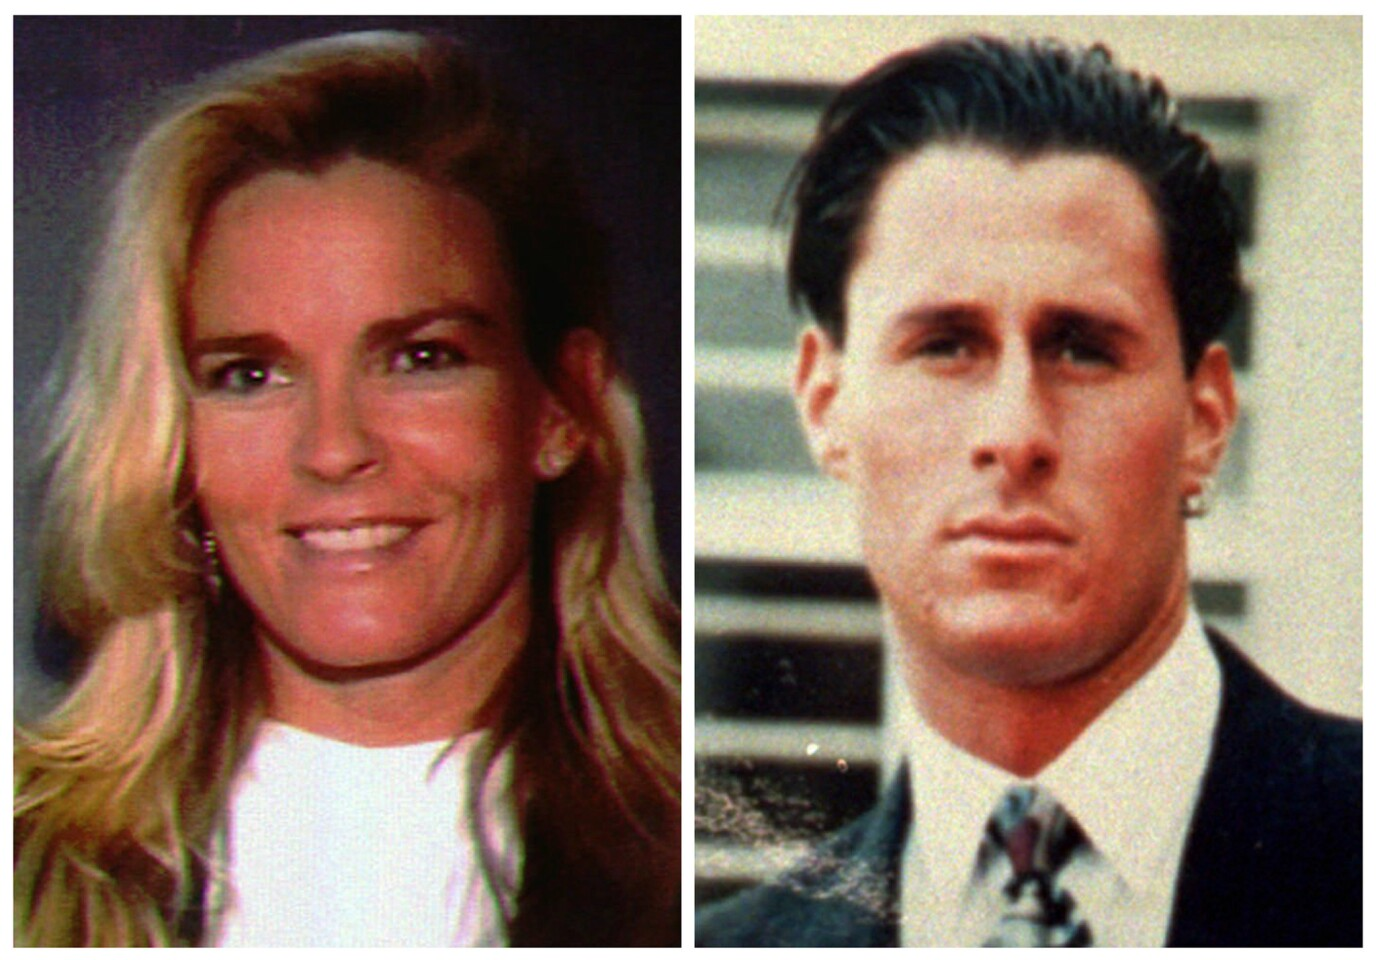 """Nicole Brown Simpson, left, and her friend Ron Goldman were found dead in Los Angeles on June 12, 1994. Hall of Fame football star O.J. Simpson was charged with the murders of Nicole and Goldman, but a jury later found him not guilty in what some call the """"Trial of the Century."""""""